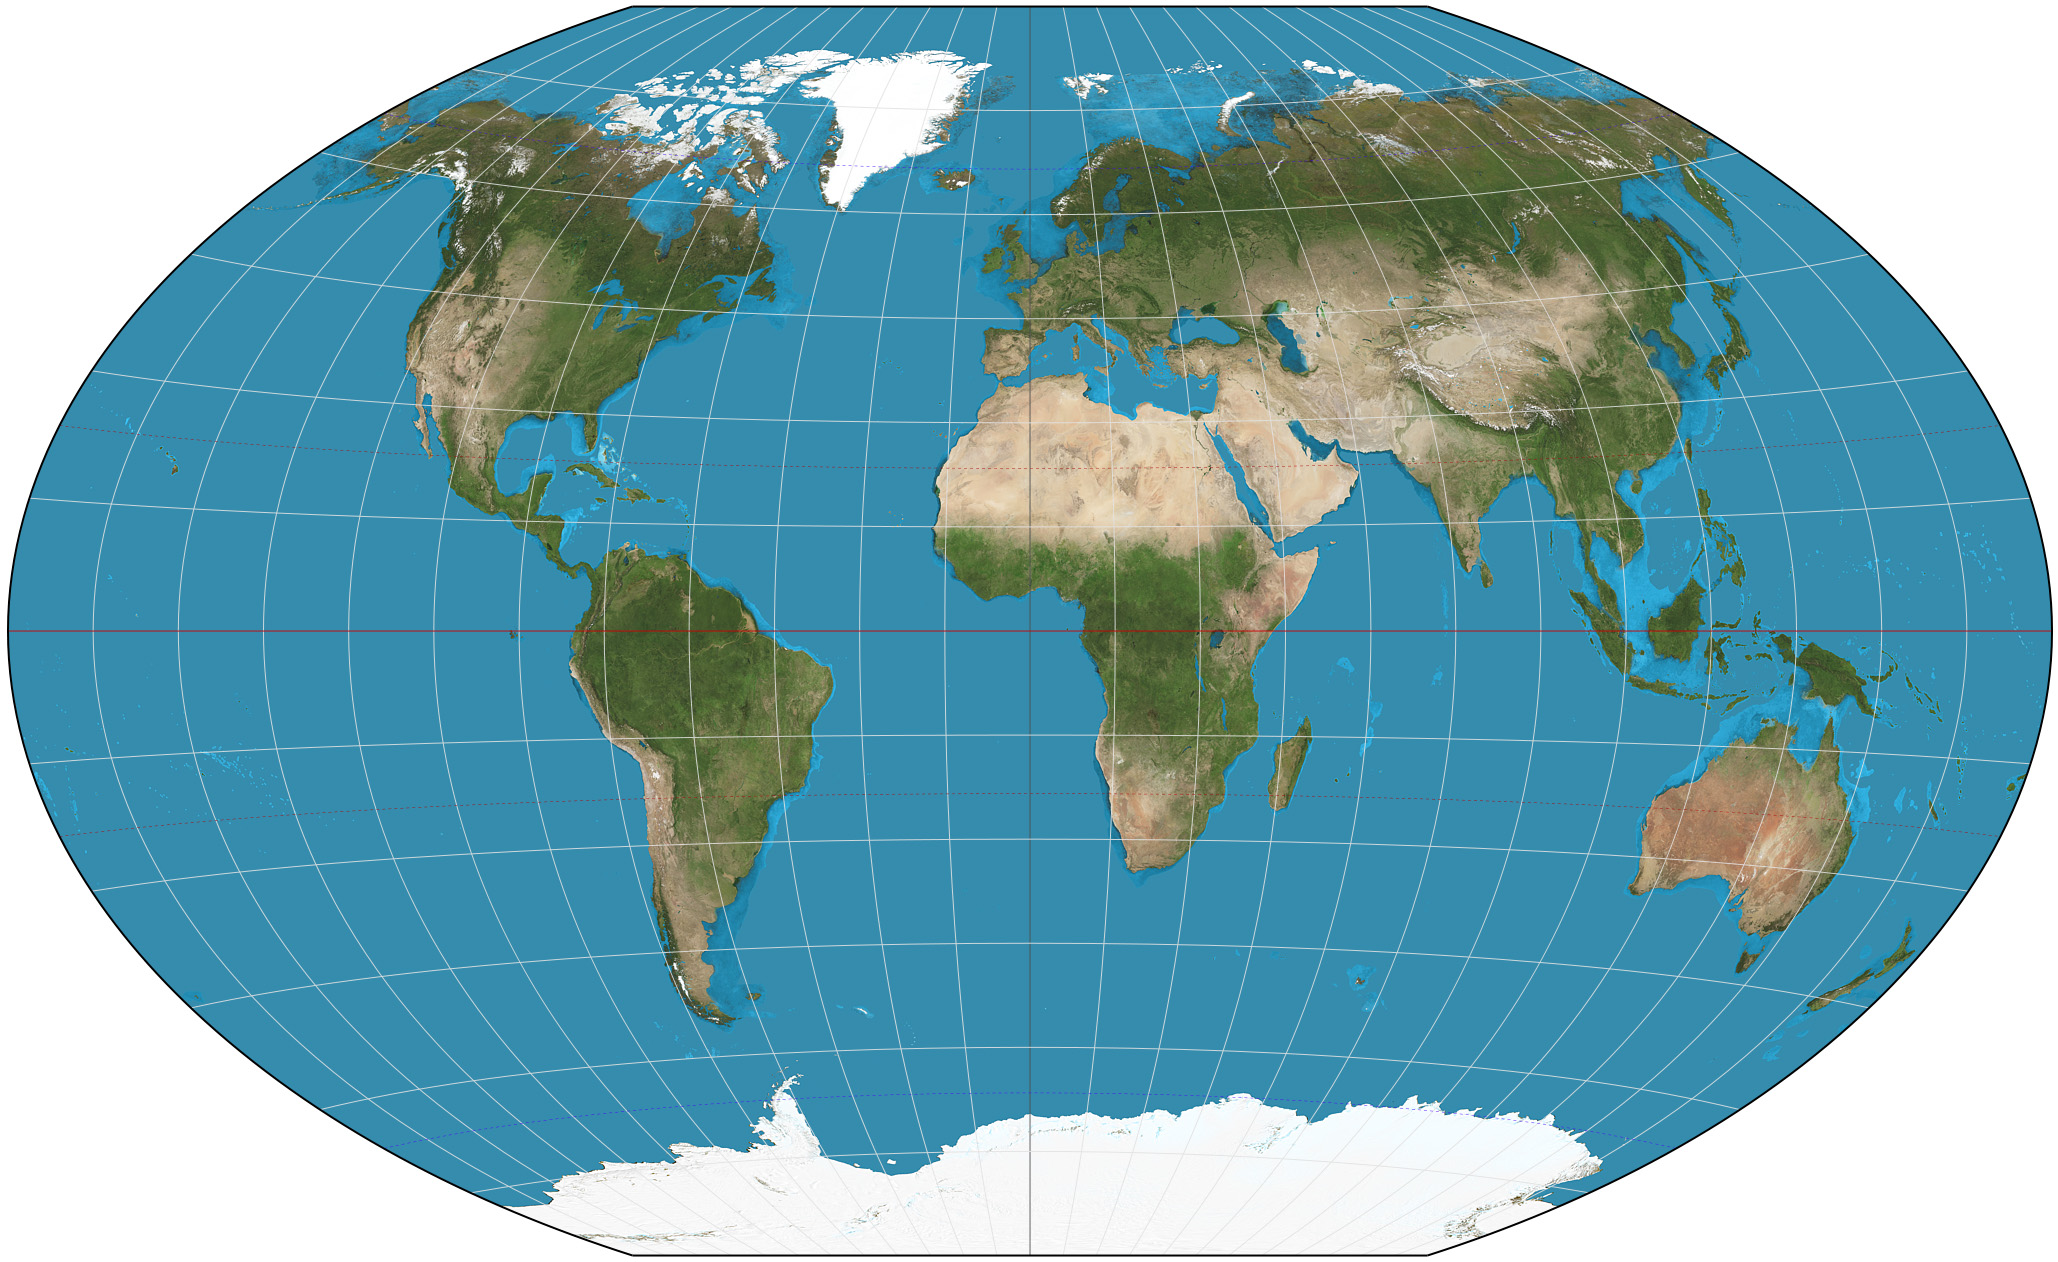 World map wikipedia a world map on the winkel tripel projection a low error map projection adopted by the national geographic society for reference maps gumiabroncs Gallery